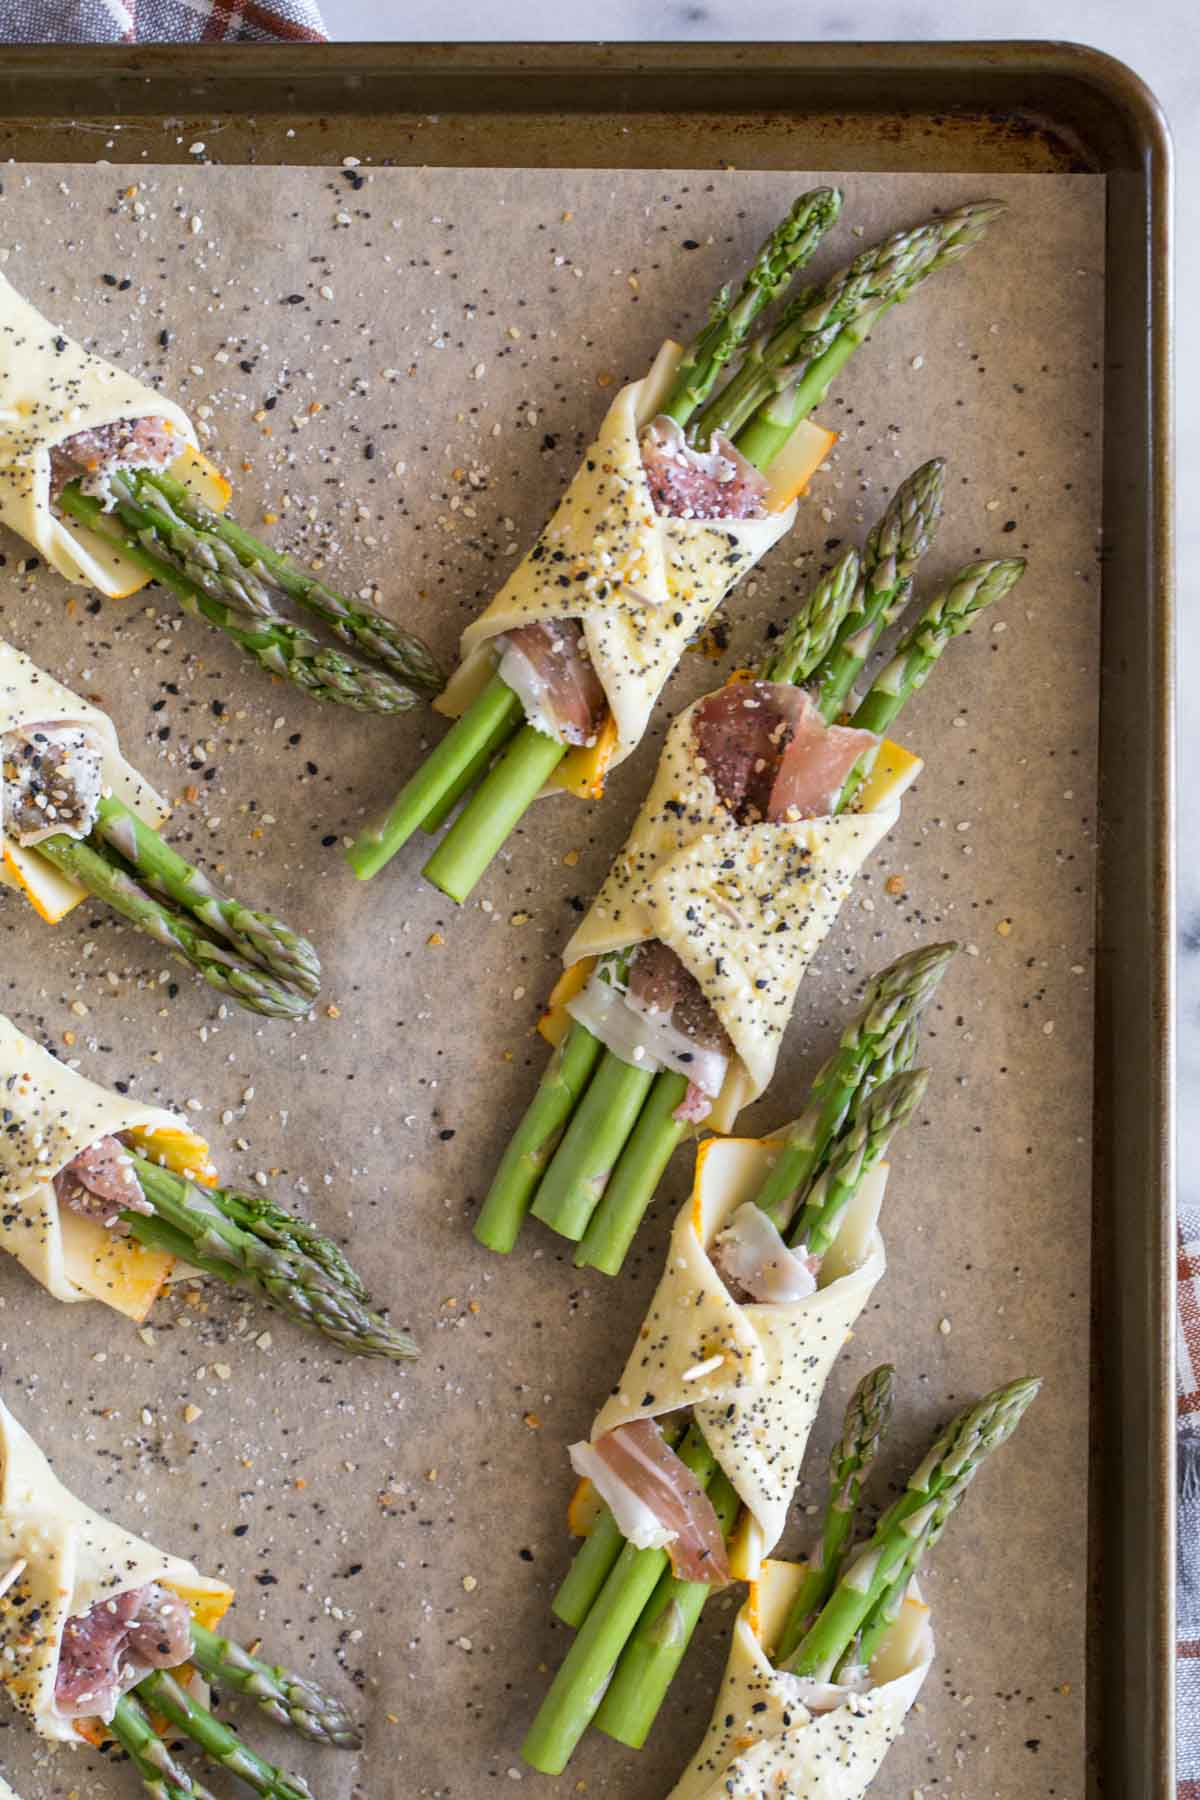 Overhead view of uncooked Puff Pastry Asparagus Bundles on a baking sheet.